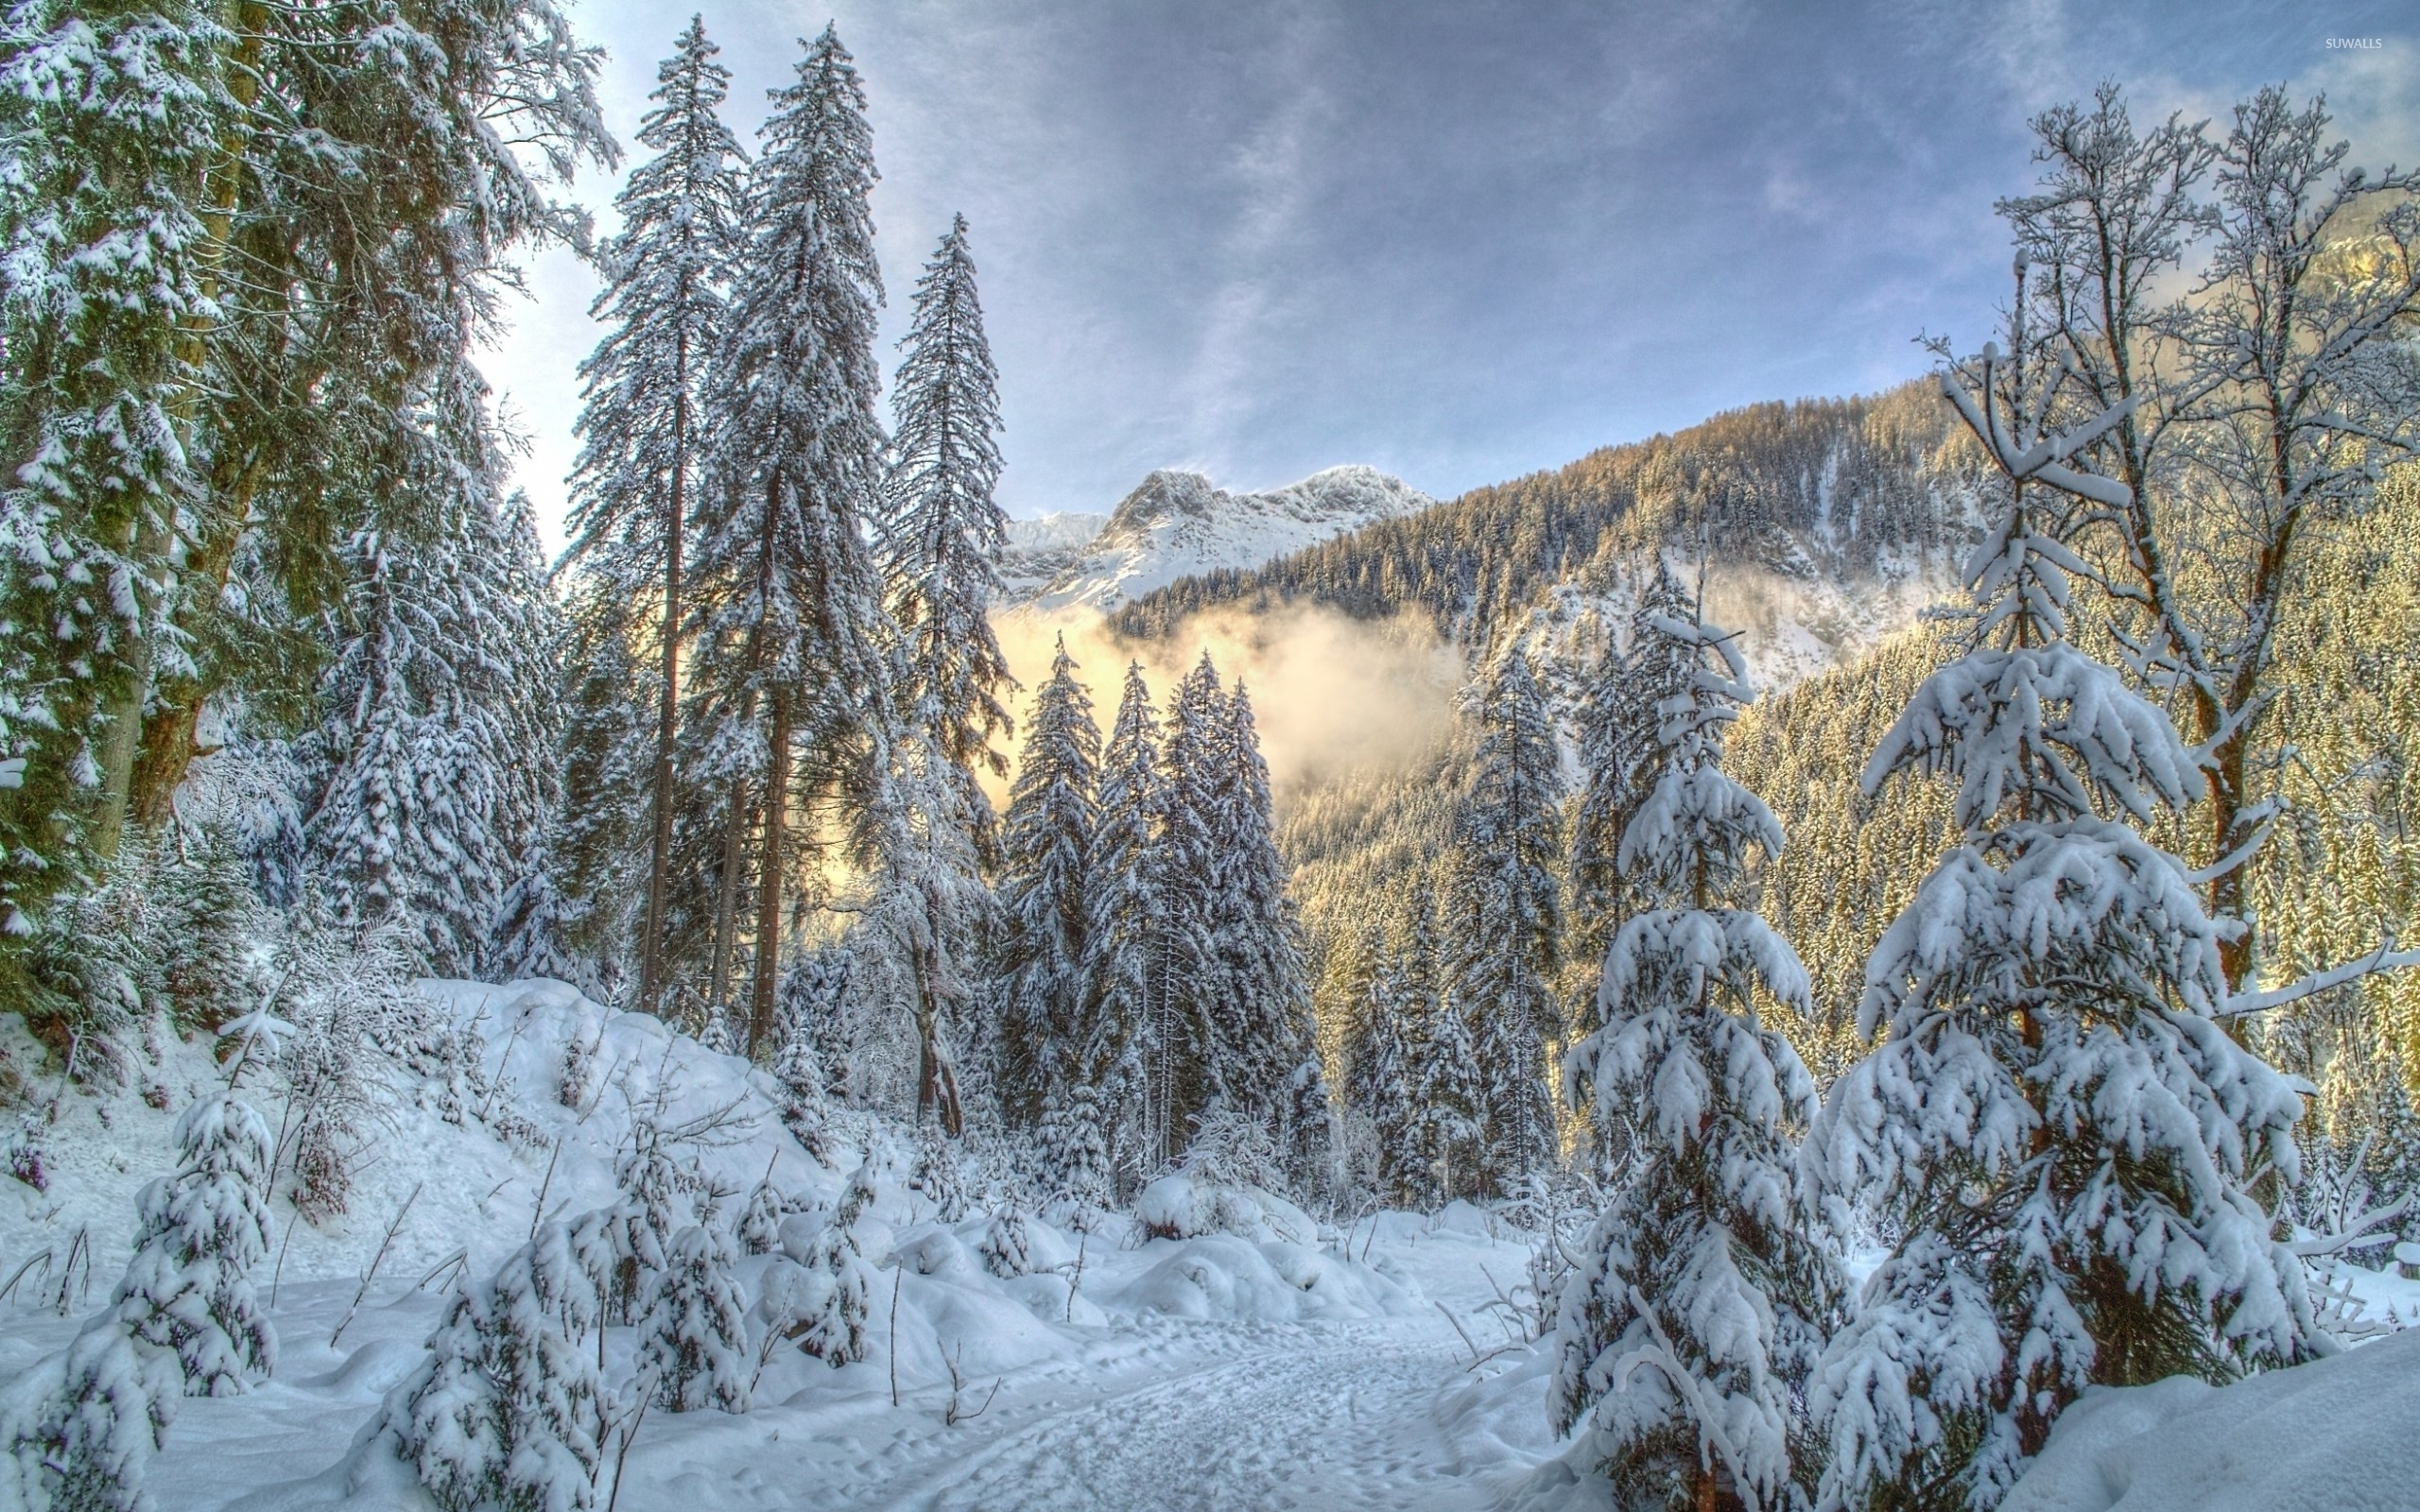 … fog rising from the snowy forest 5 wallpaper nature wallpapers …